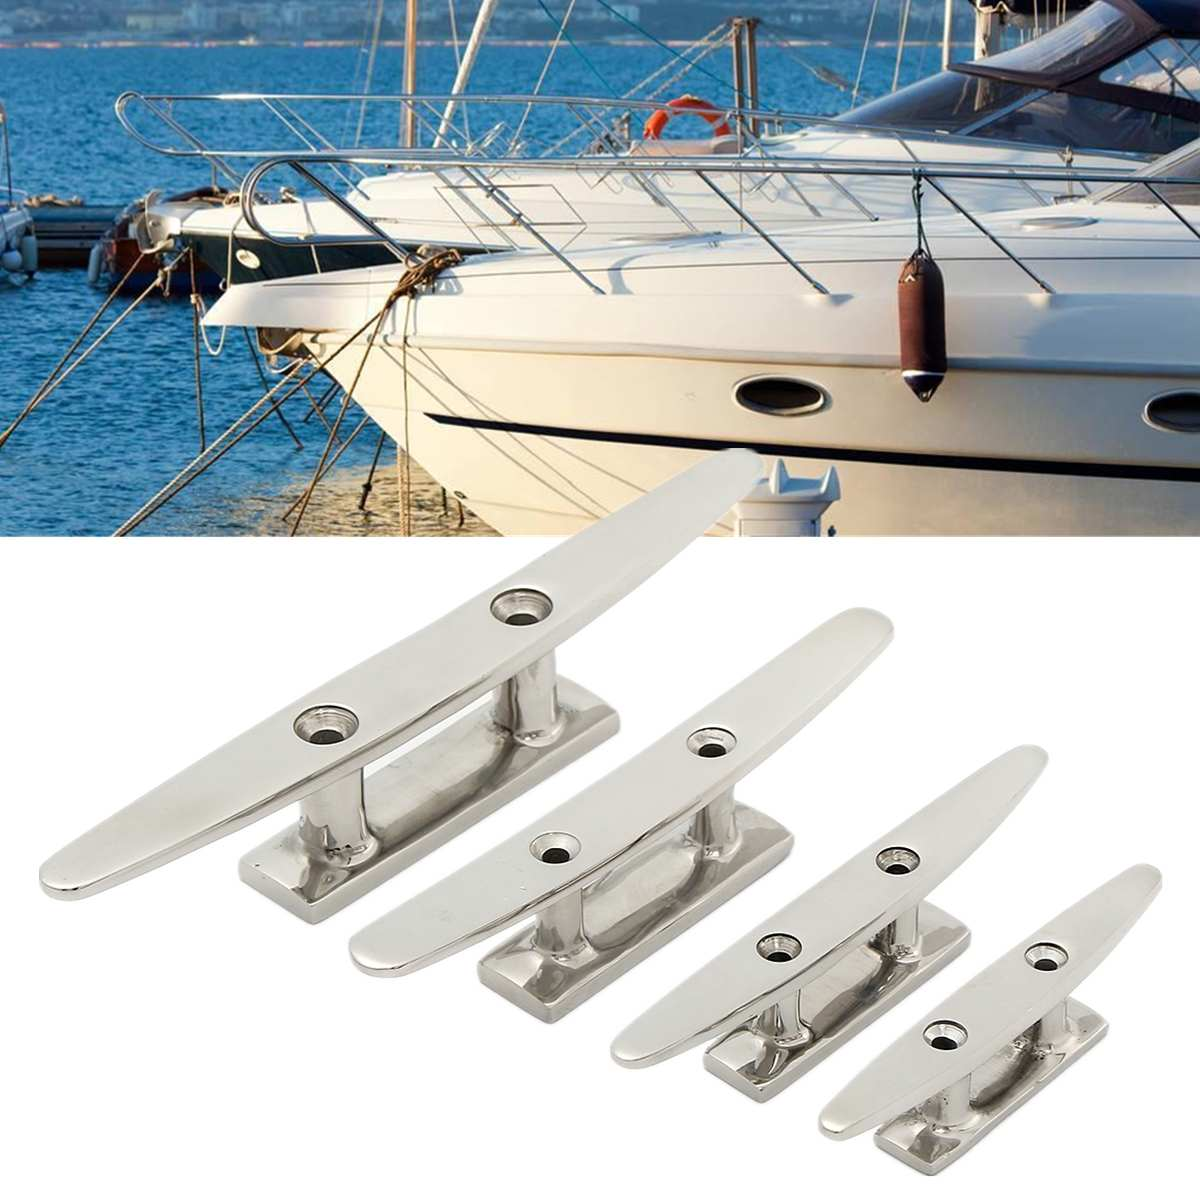 "Low Flat Cleat 316 Stainless Steel 2 Hole Hardware For Marine Boat Deck Rope Tie 4"" 5"" 6"" 8"" for All Chandlery Applications(China)"